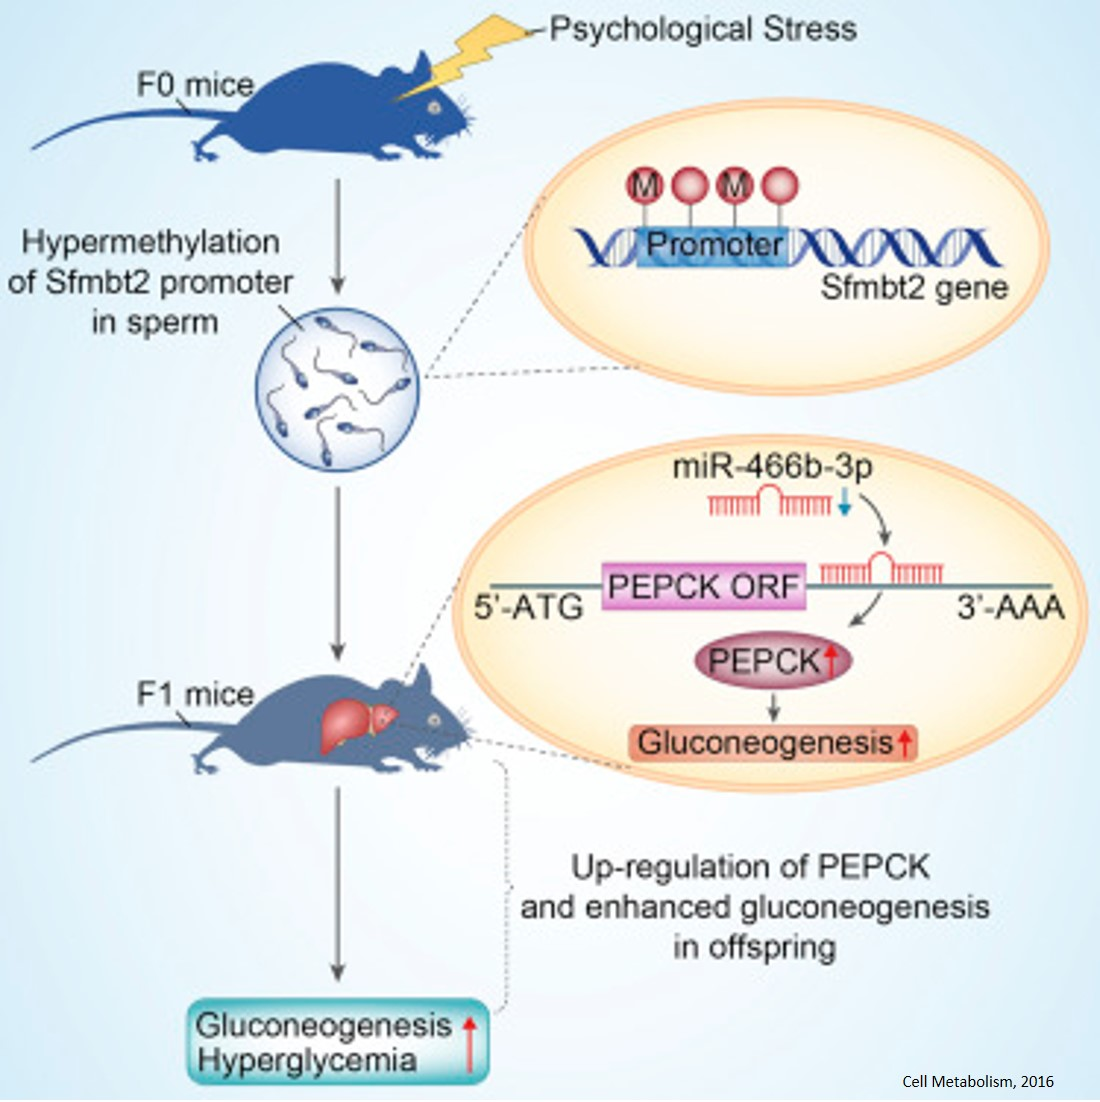 Paternal psychological stress on the regulation of glucose metabolism